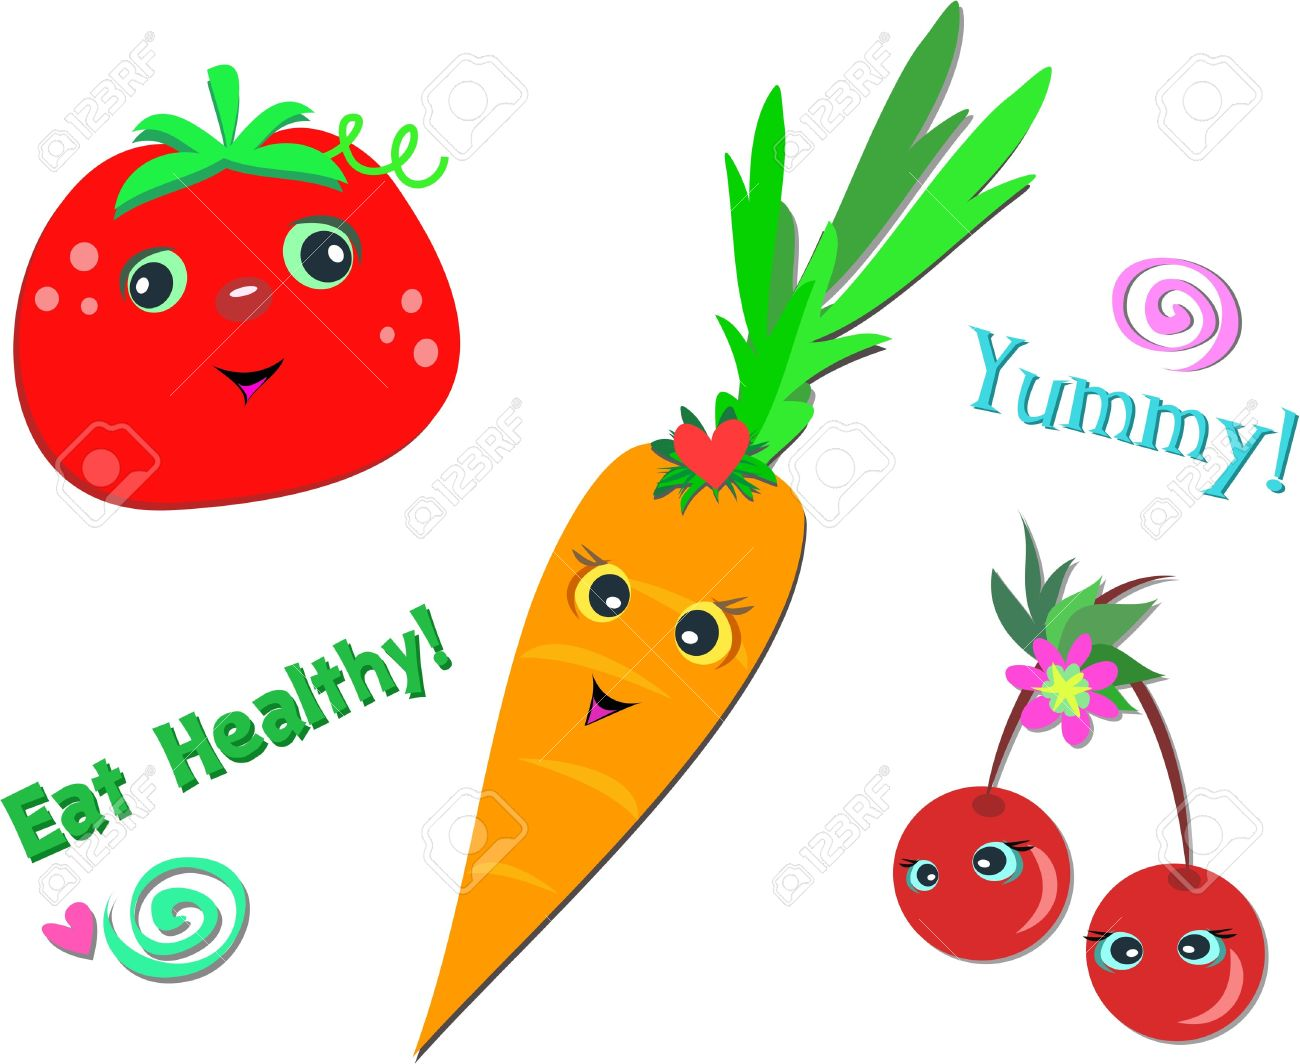 Eat Healthy Clipart | Free download best Eat Healthy Clipart on